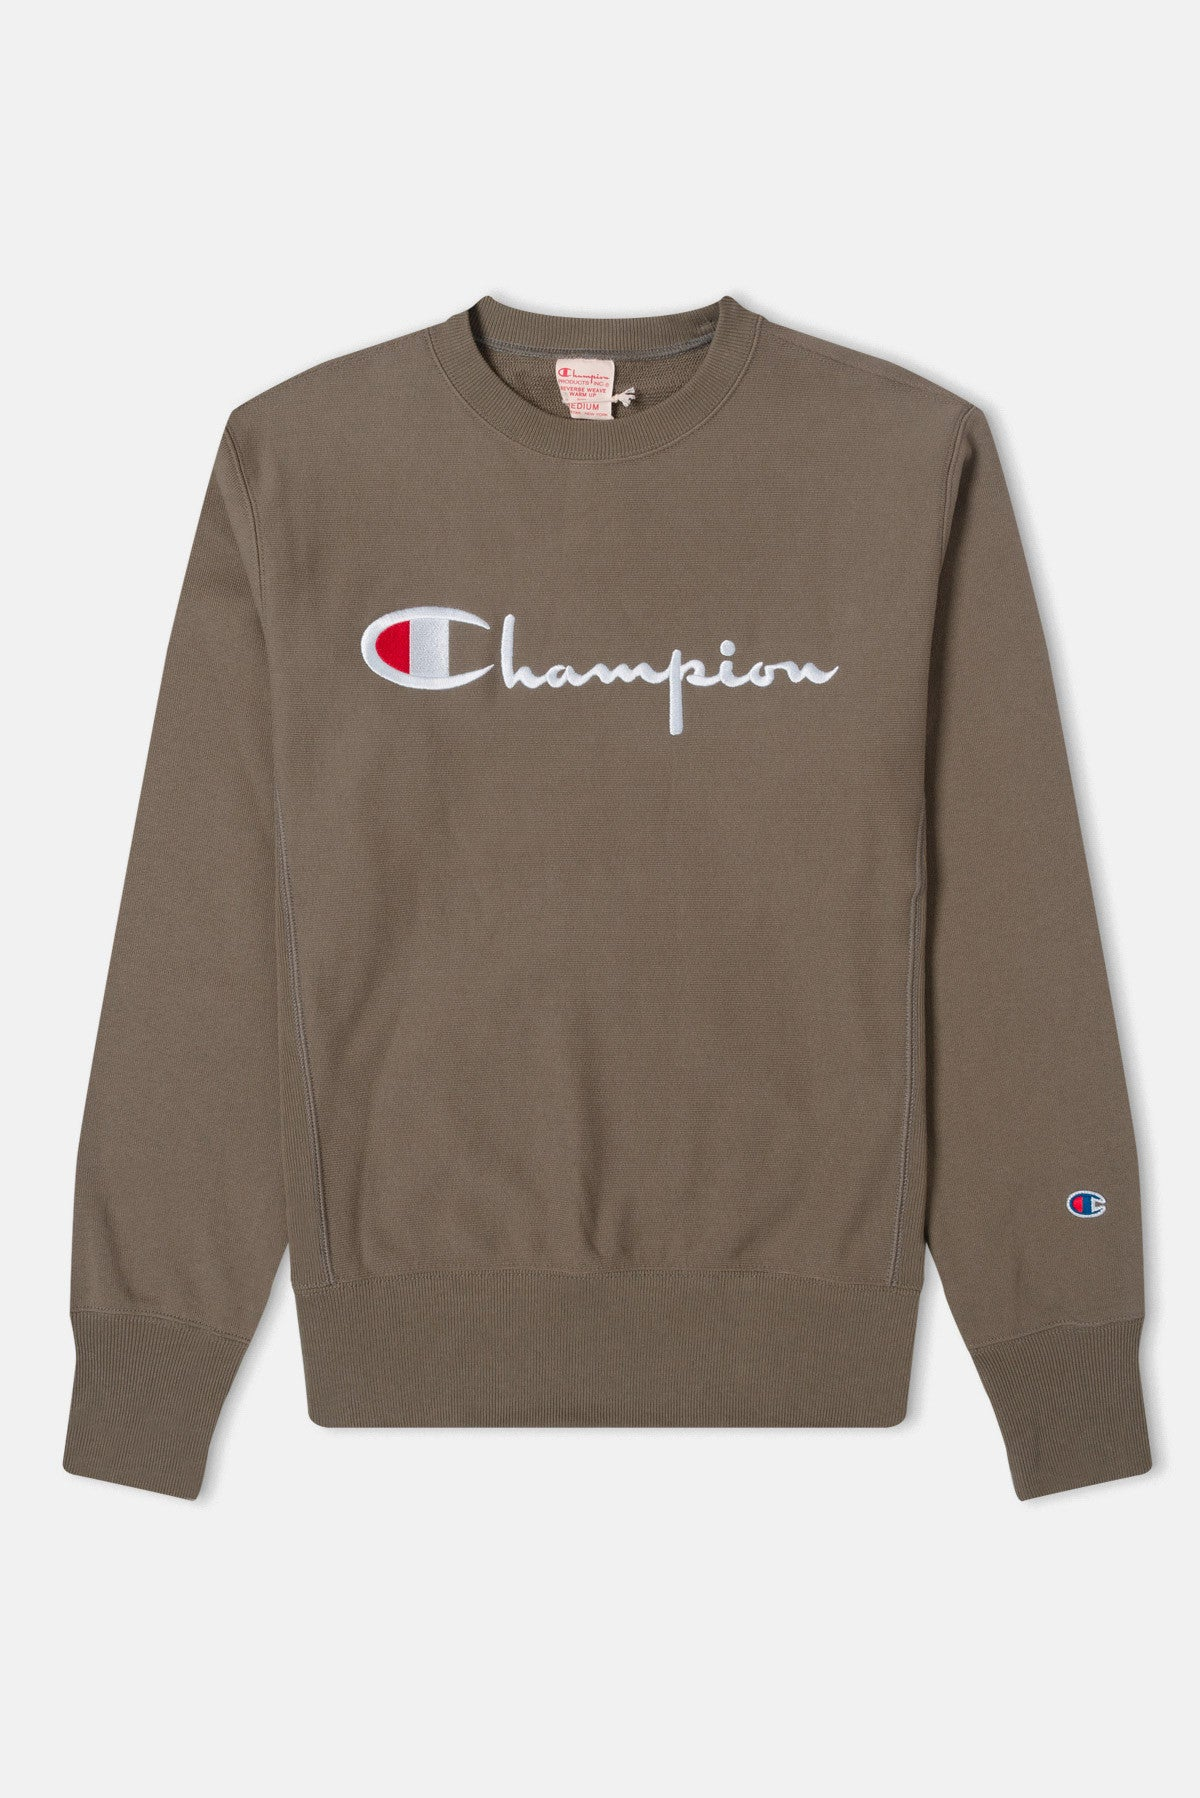 a626c9f3 Champion Script Logo Reverse Weave Sweatshirt available from Priory